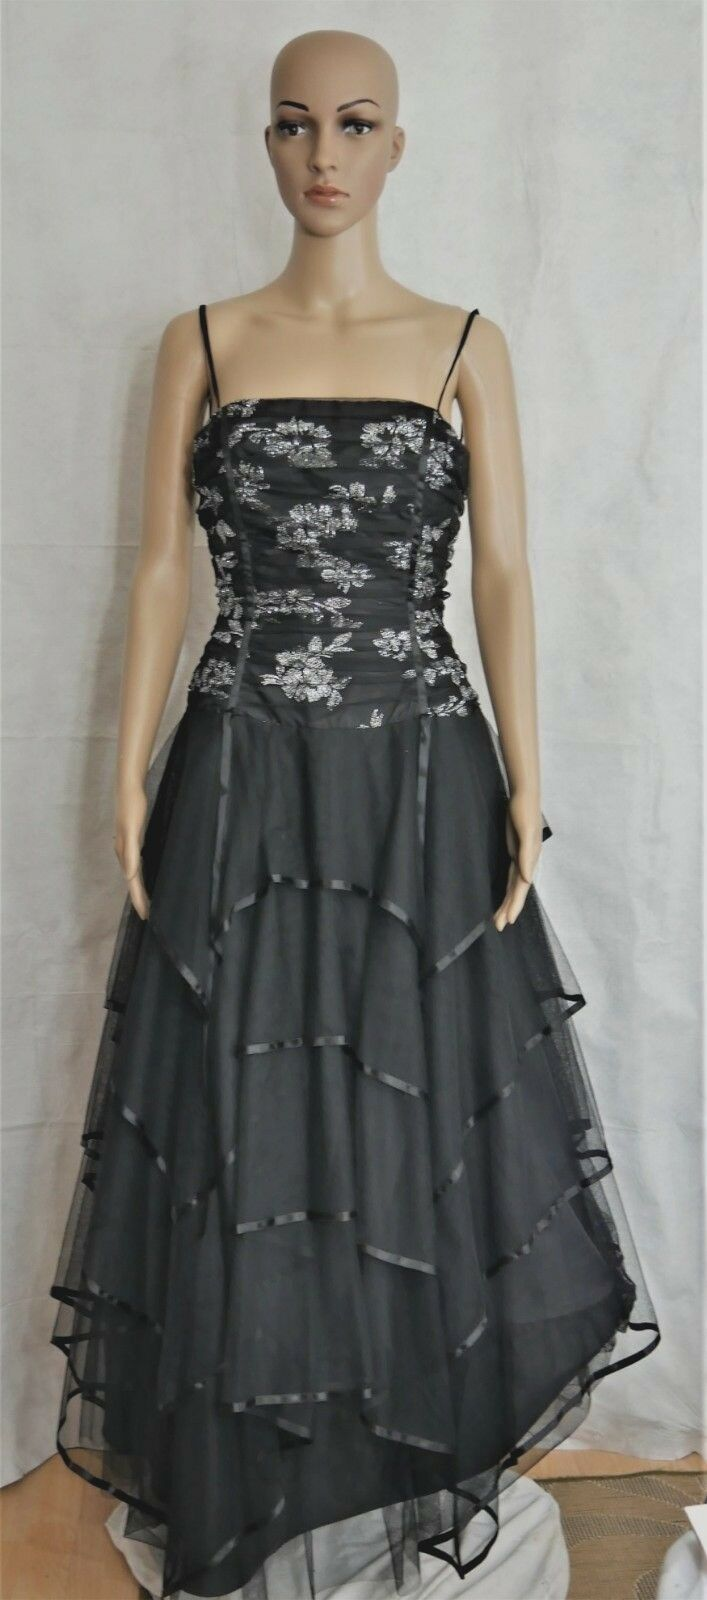 Black Gothic Lace Up Back Tiered Tulle Skirt Evening Dress Blondie Nite Size 7